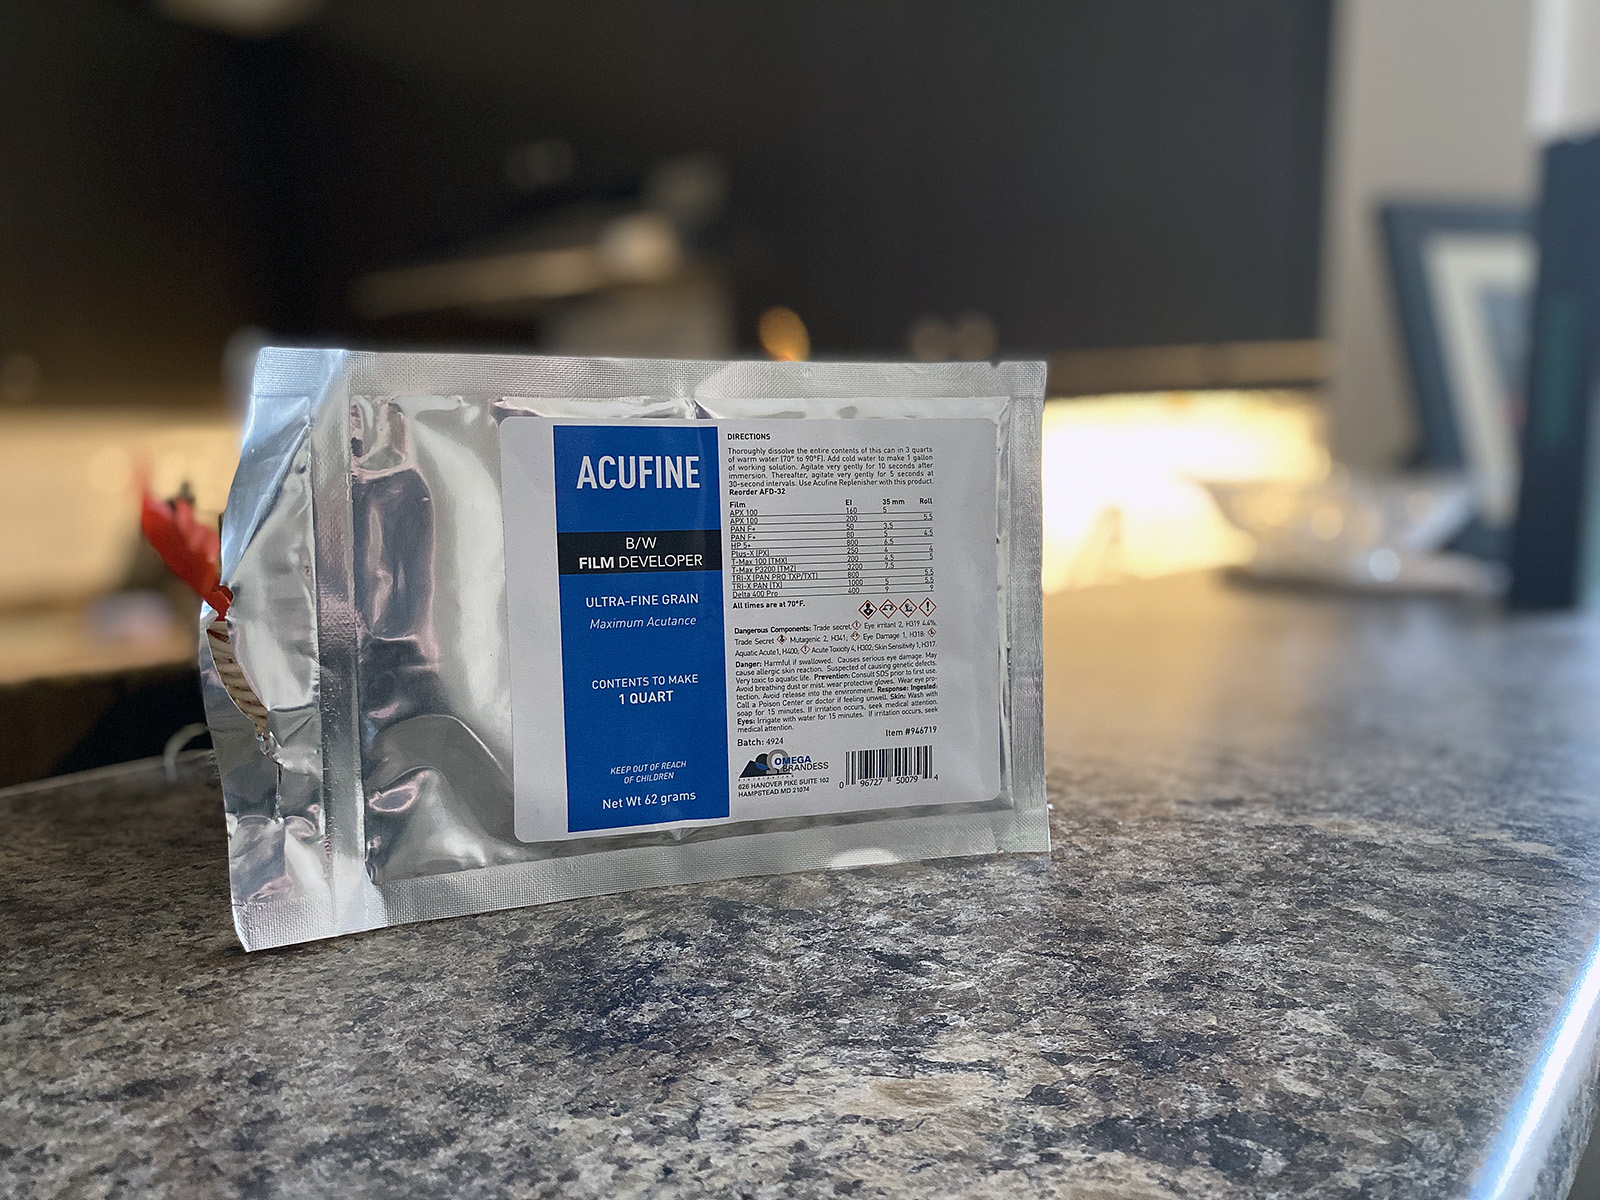 Silver Foil Pouch with Blue and White Label stating it contains the powder to make Acufine developer.